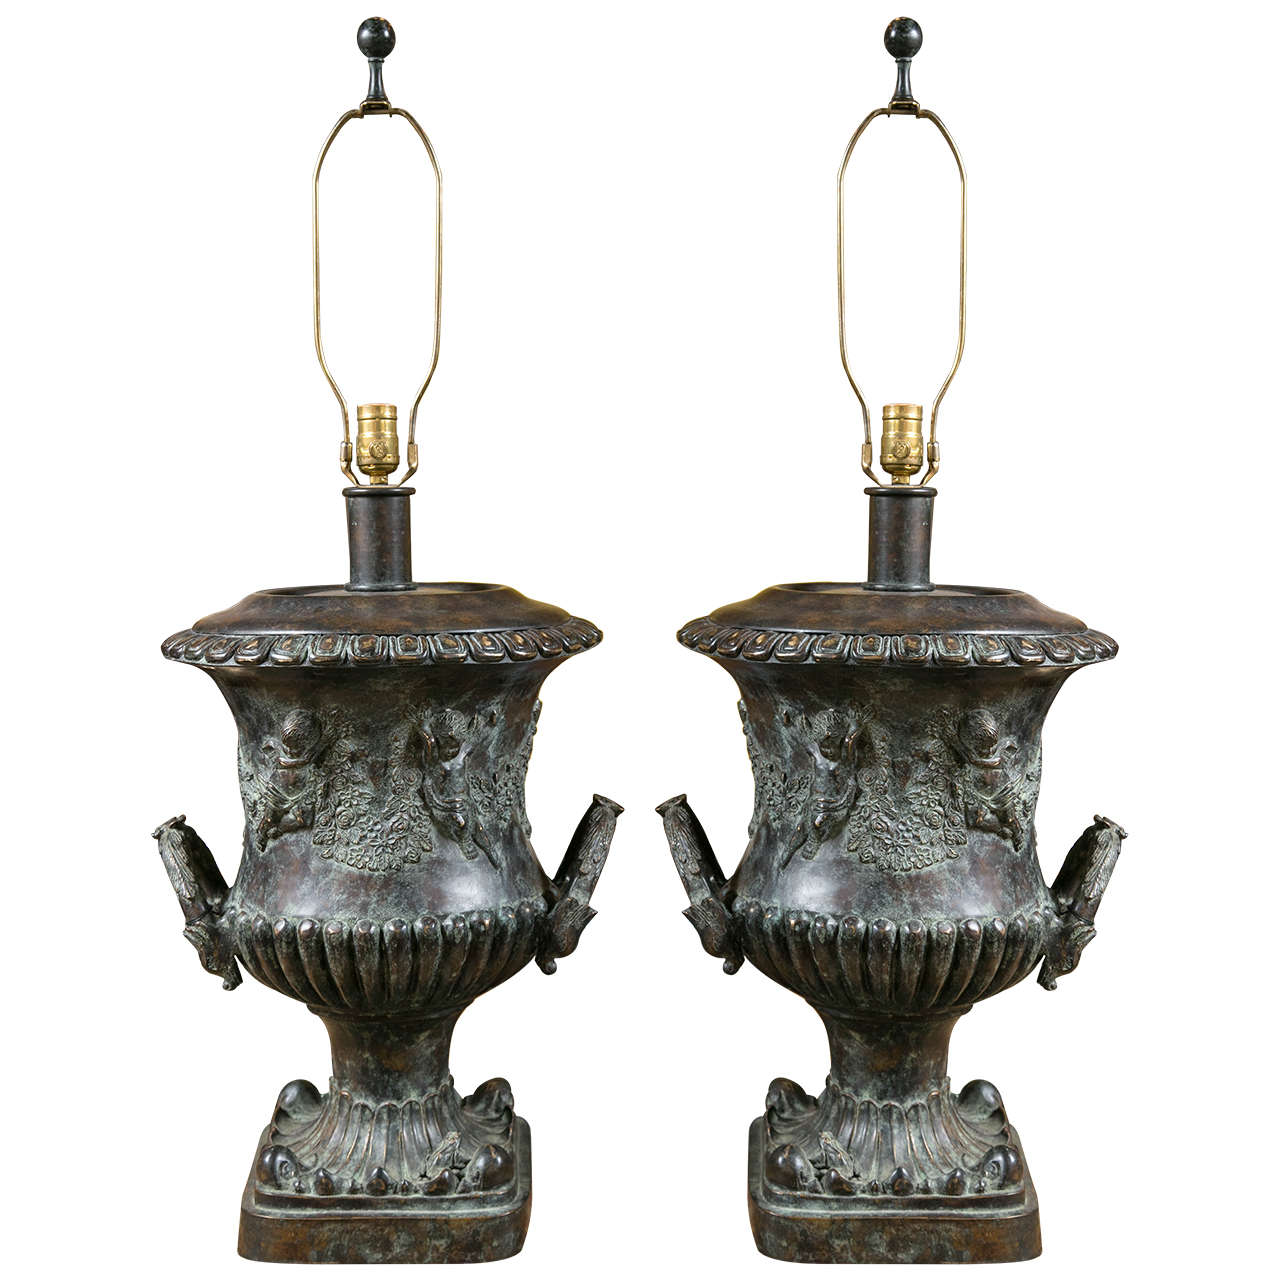 Pair of Cast Bronze Urn L&s by Maitland Smith For Sale  sc 1 st  1stDibs & Pair of Cast Bronze Urn Lamps by Maitland Smith For Sale at 1stdibs